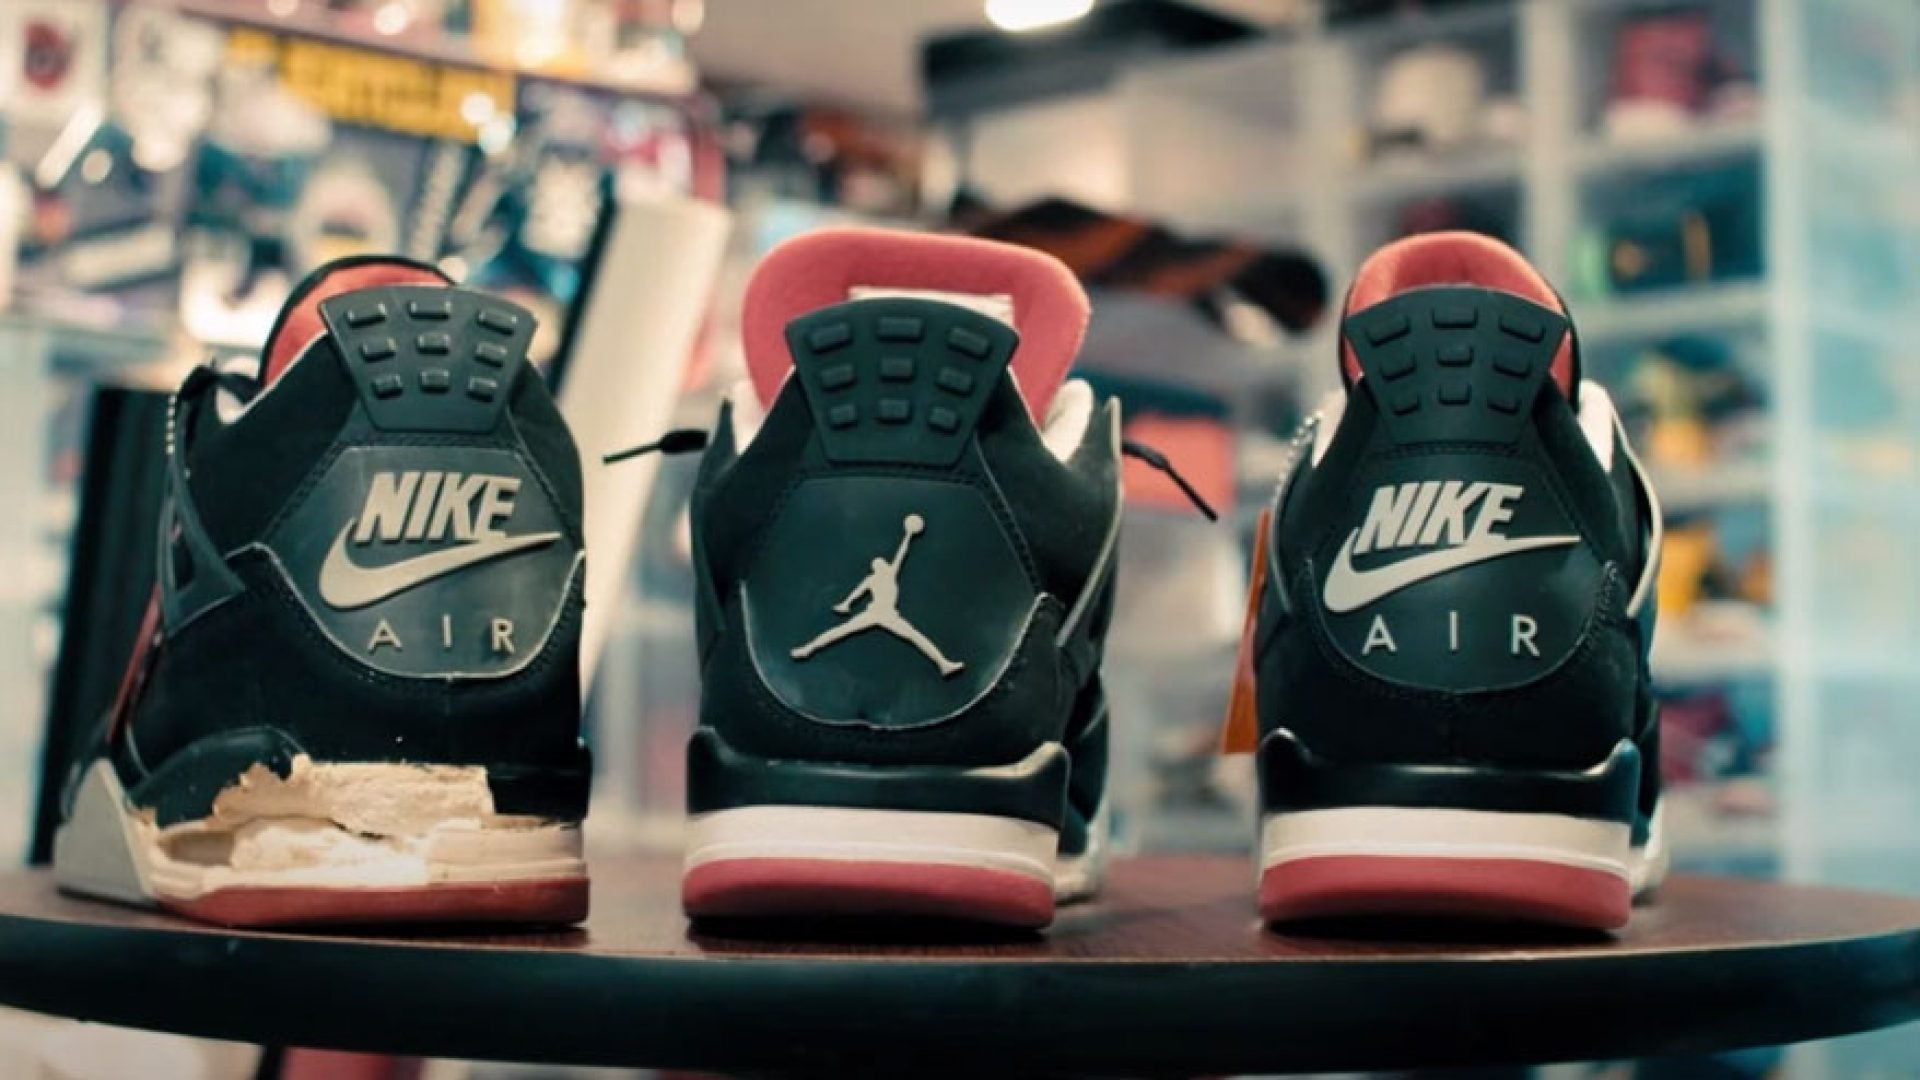 Vice Set To Launch Documentary On Air Jordan Sneaker